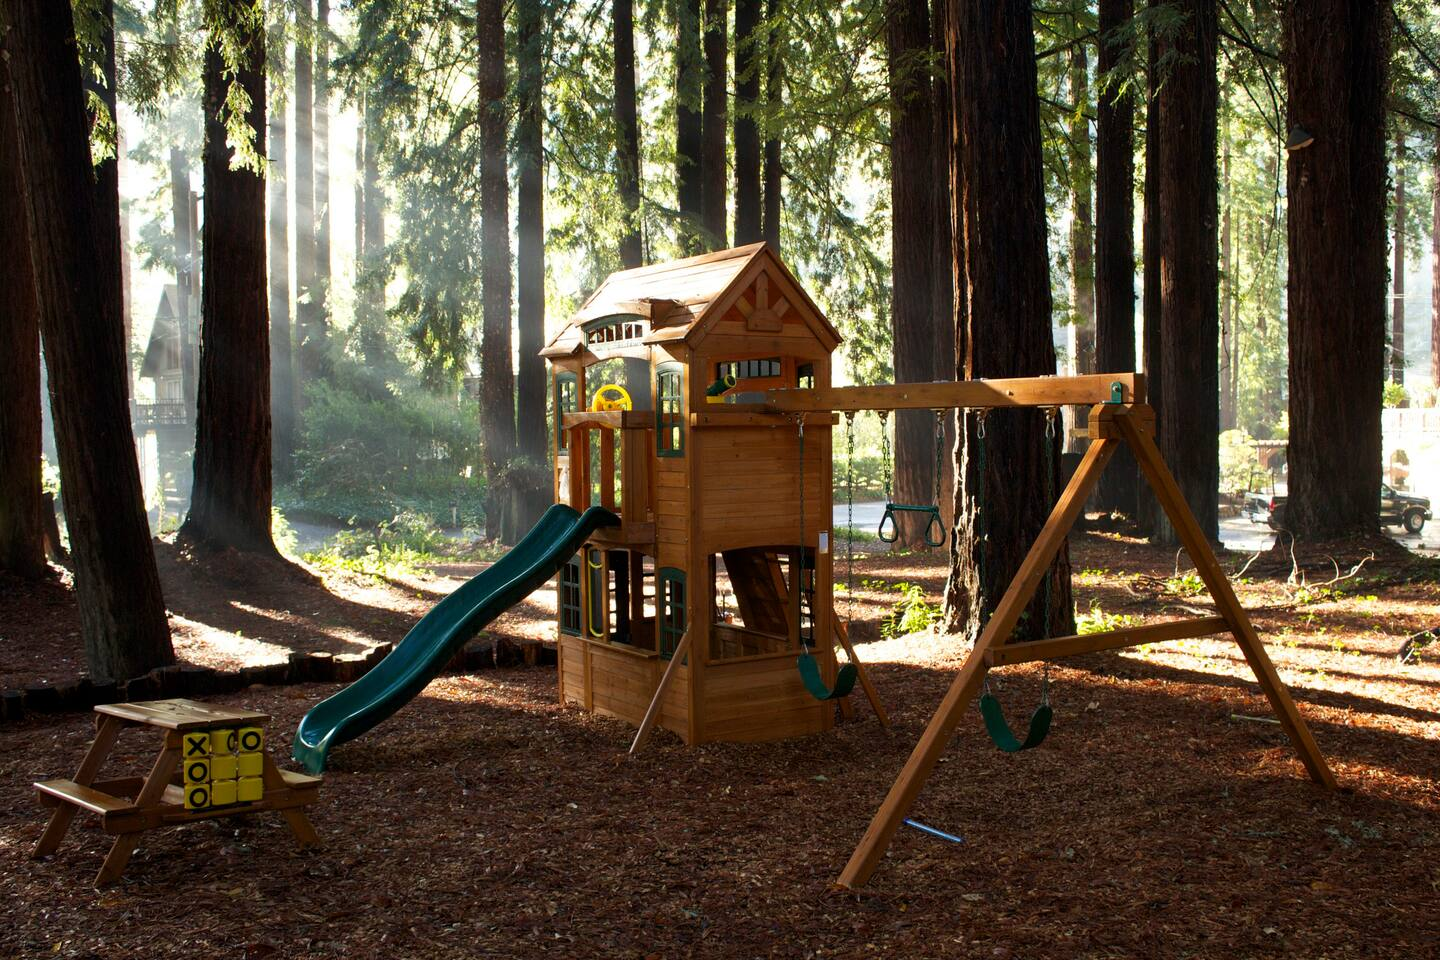 Casa Sophia is a family friendly vacation rental in Monte Rio, complete with playset in a large tree grove